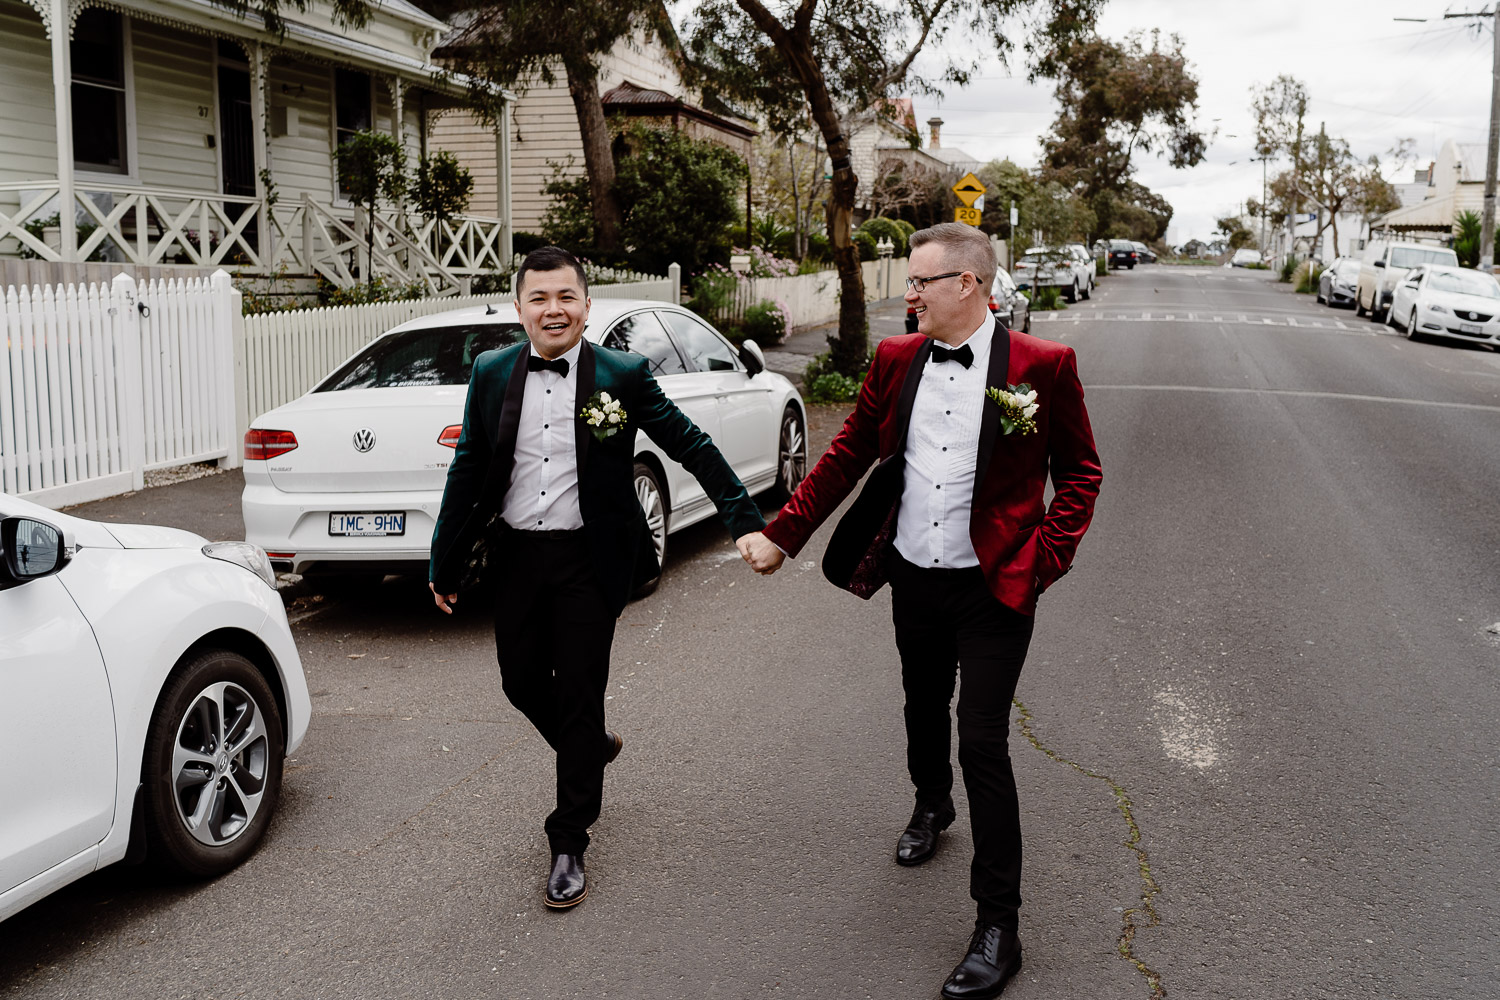 Justin_Westwood_Photography_Melbourne_Yarra_Valley_Photographer_Same_Sex_Marriage_Warren_Elvin